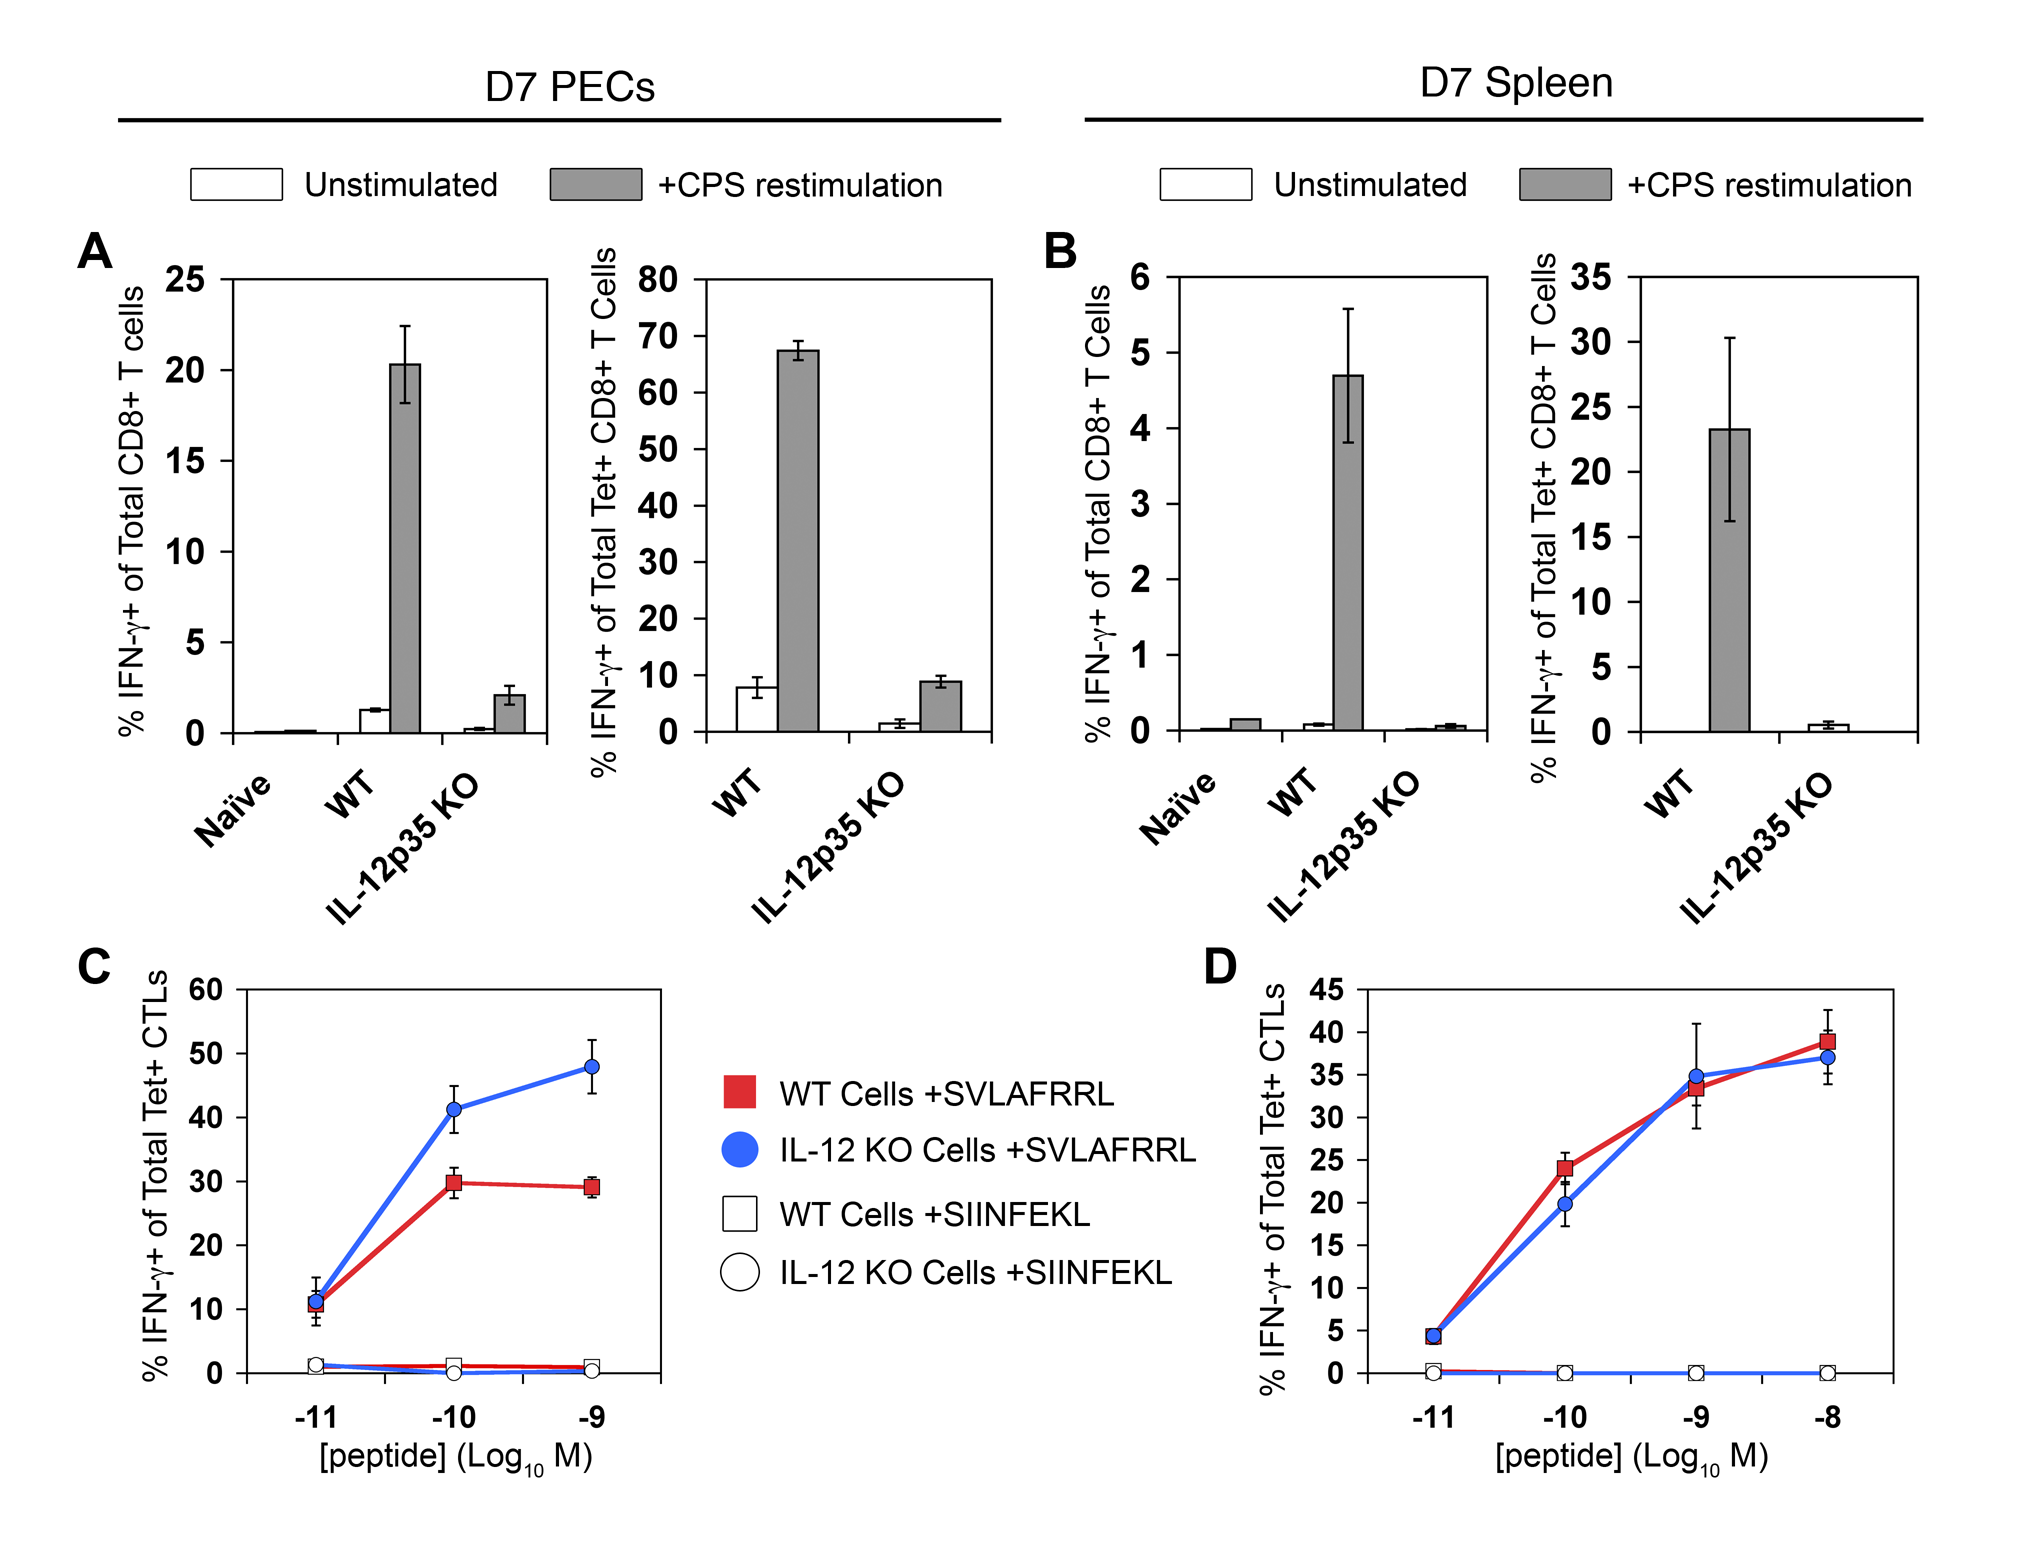 Tgd057-specific CTLs primed in <i>Il12a</i><sup>−/−</sup> mice do not produce IFN-γ in response to parasite restimulation.